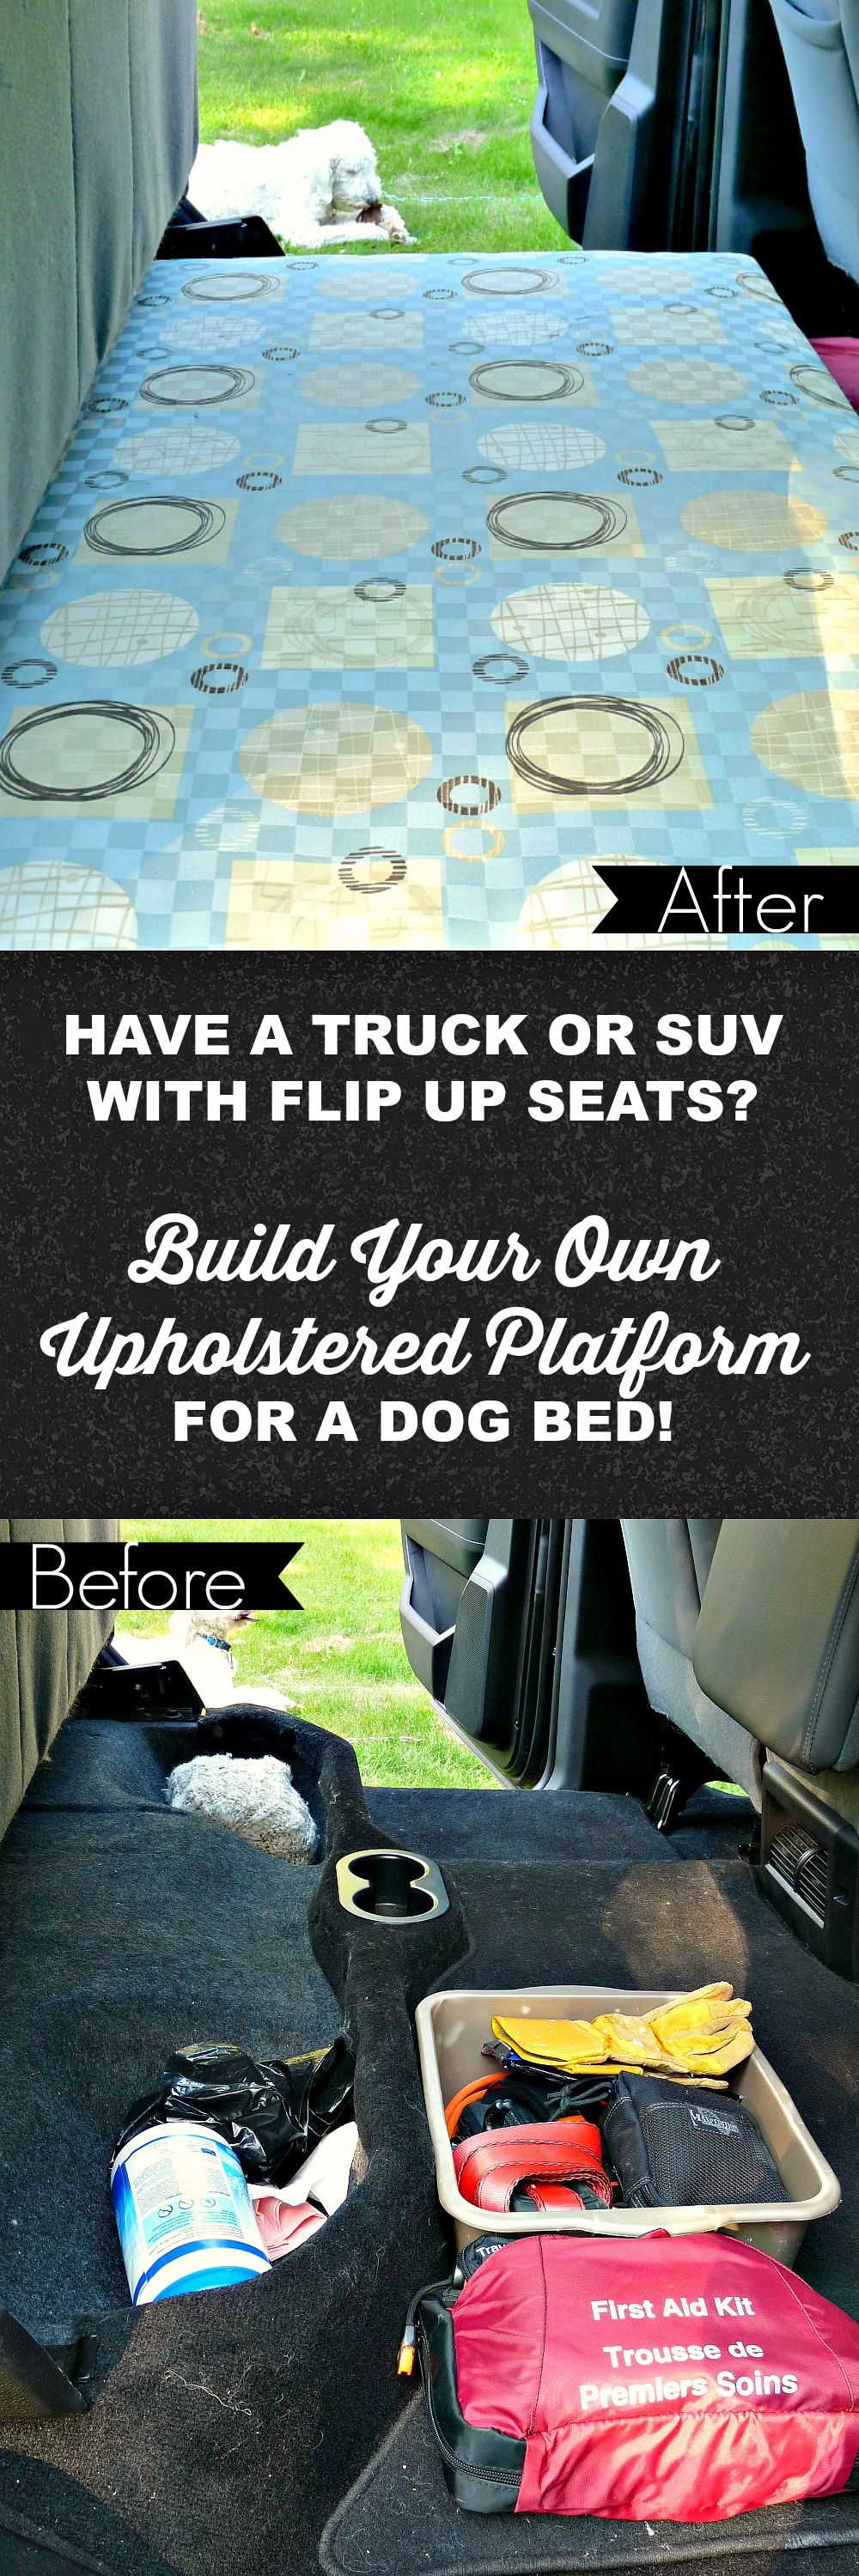 DIY Dog Platform for Back of Ram Truck Cab Diy dog bed